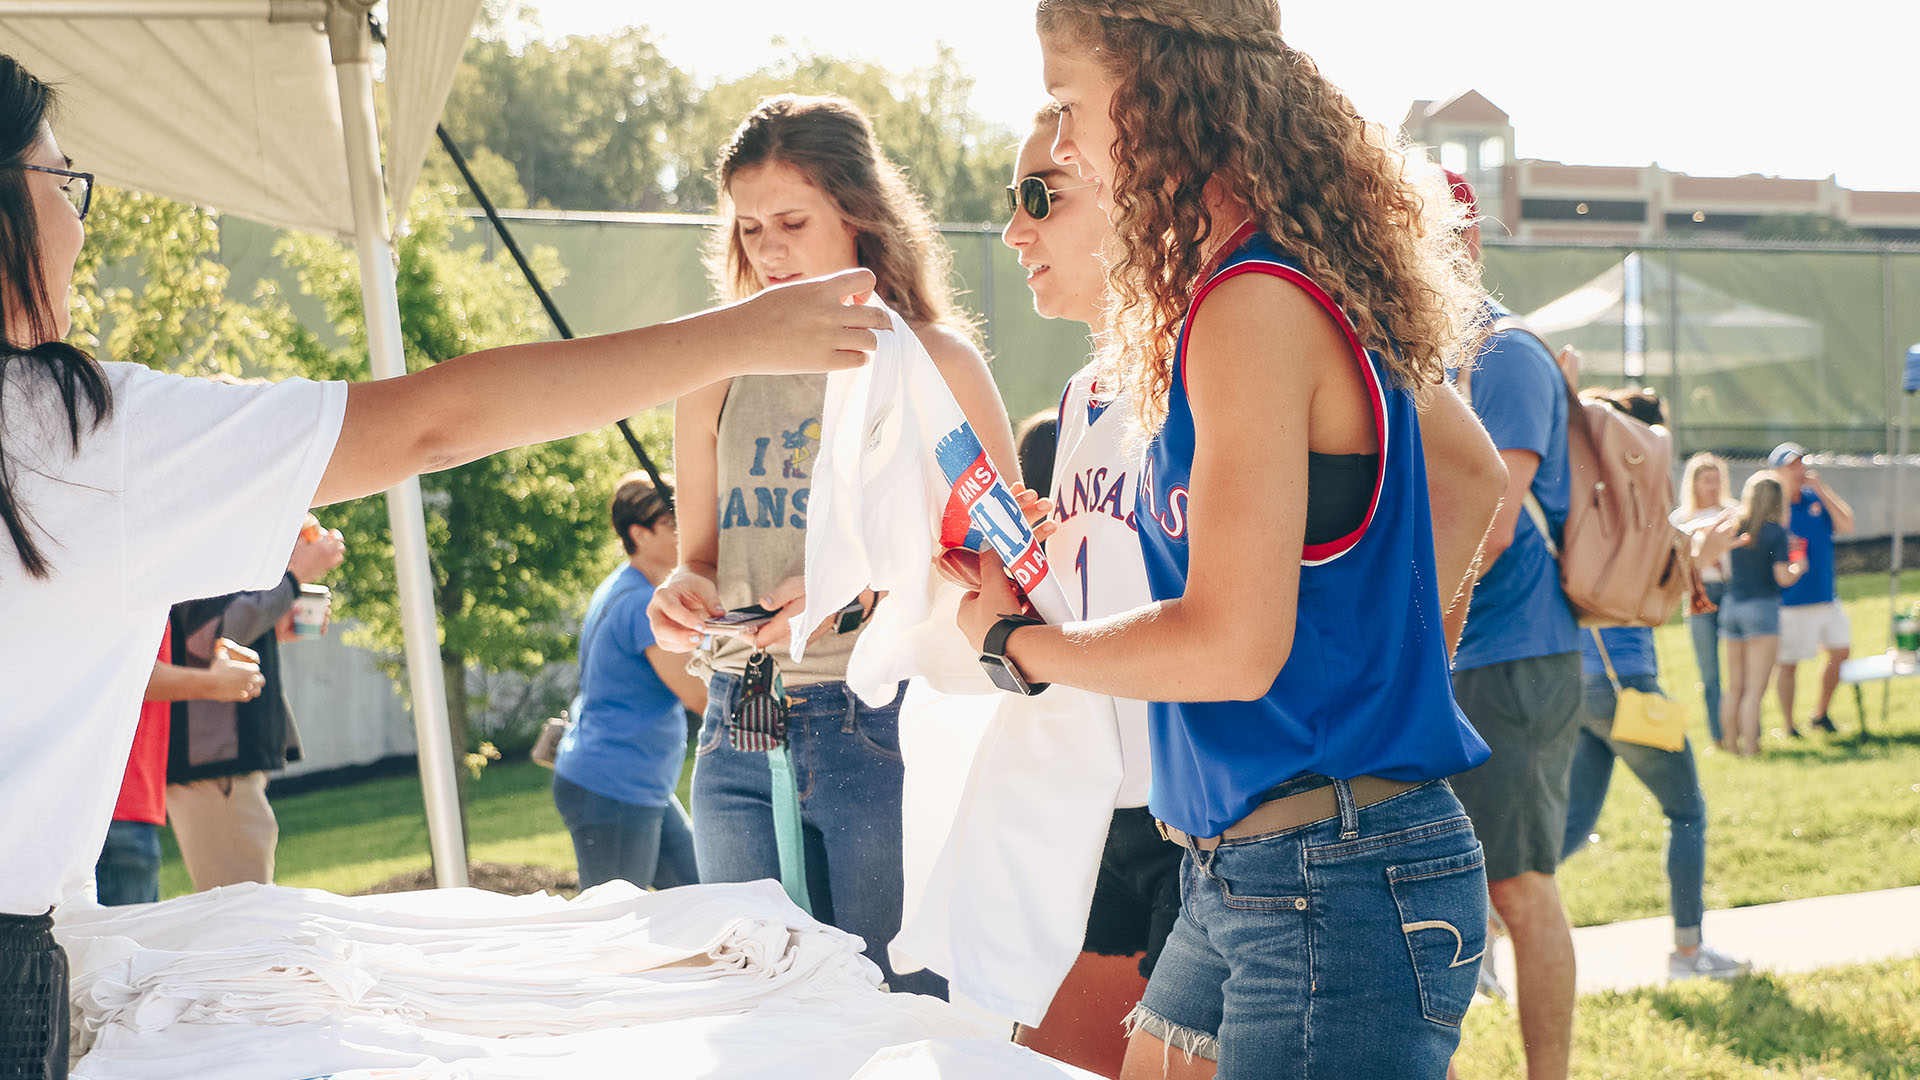 student tailgate indiana state grabbing shirts